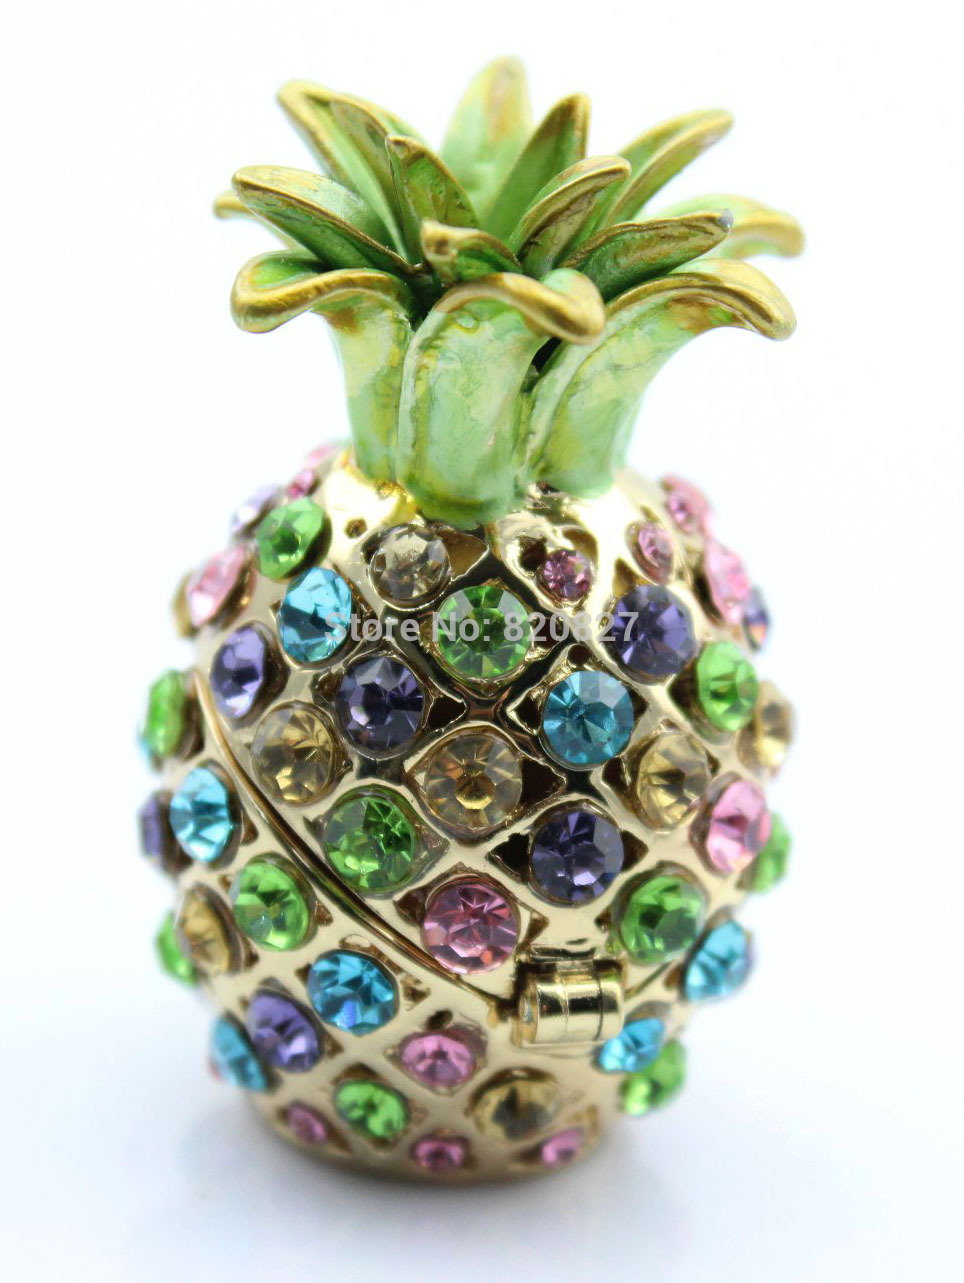 (Pack of 2) Gorgeous Miniature Pineapple Jeweled Trinket Box Jewelry Box with Crystal Stones, Pill Box Figurine